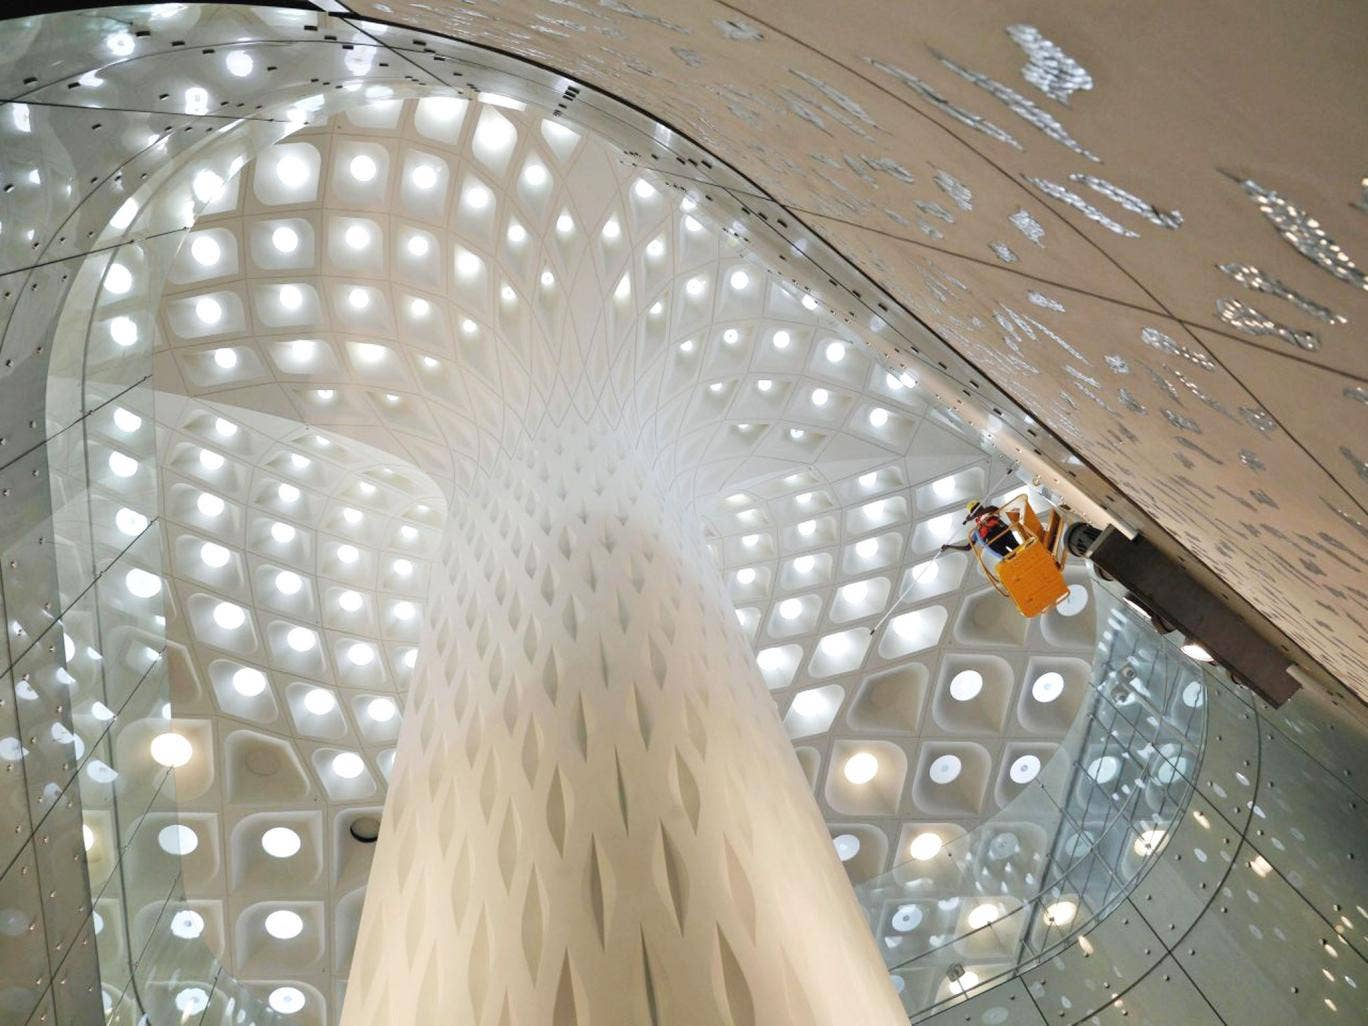 Indian workers clean a wall of the new airport terminal at the Chhatrapati Shivaji International Airport in Mumbai